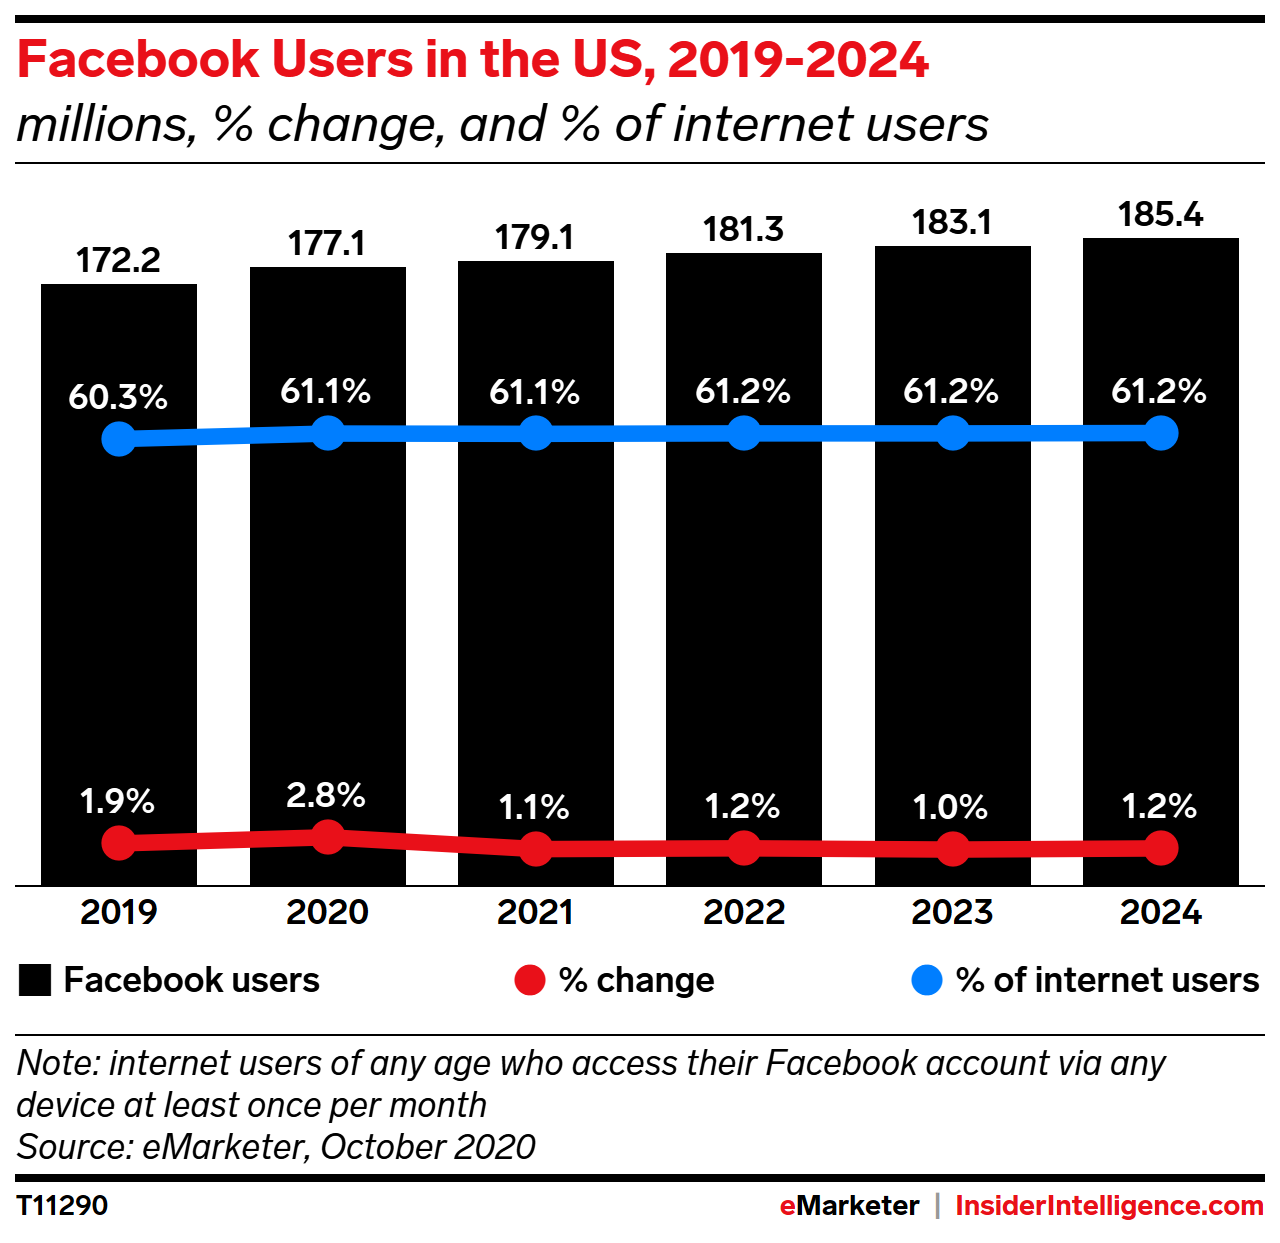 Facebook Users in the US, 2019-2024 (millions, % change, and % of internet users)